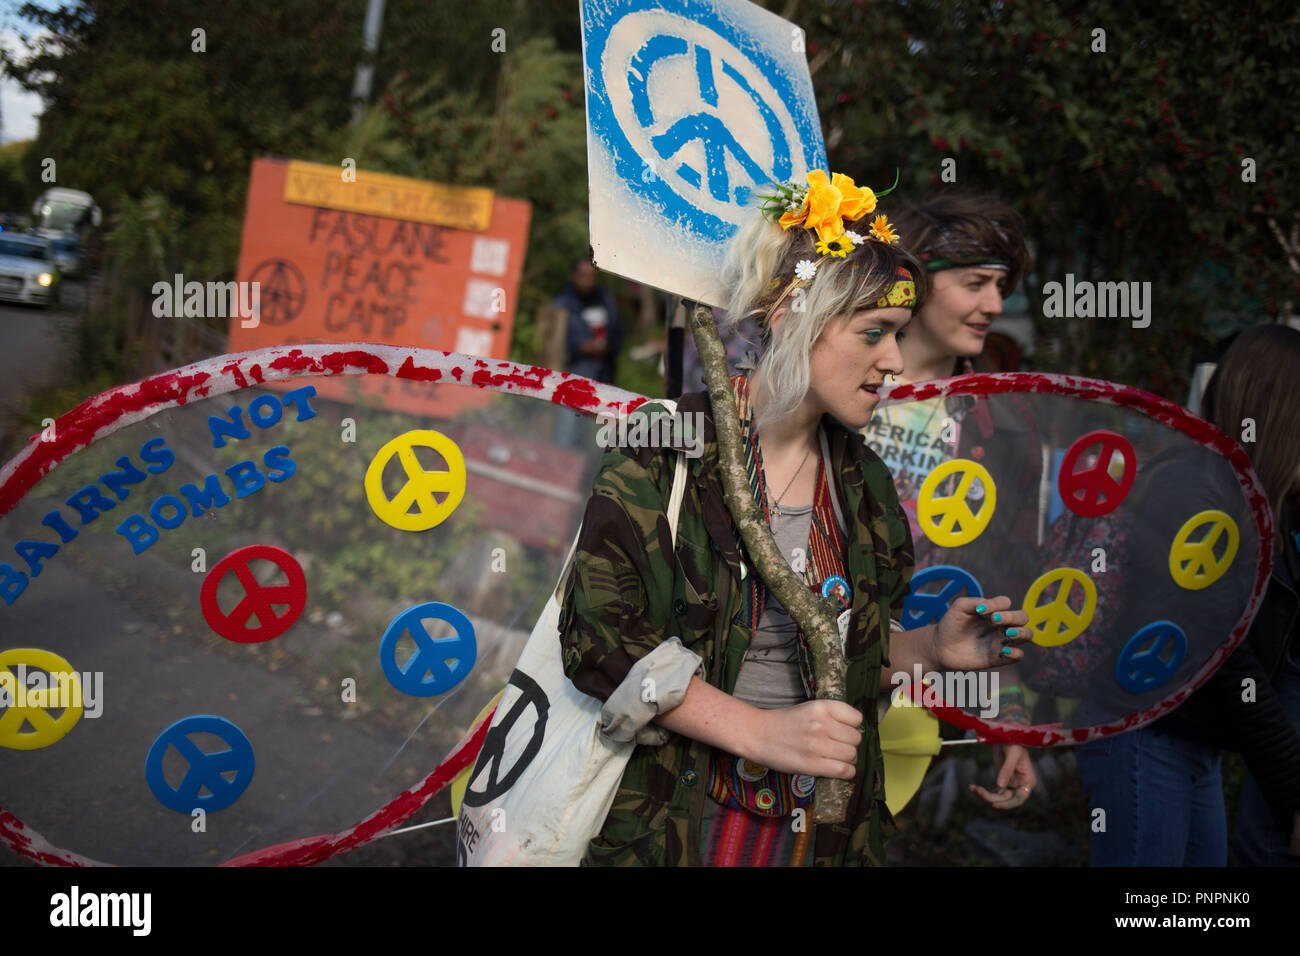 Faslane, Scotland, on 22 September 2018. 'Nae (No) Nukes Anywhere' anti-nuclear weapons demonstration at the Faslane Peace Camp and walking to a rally outside HM Naval Base Clyde, home to the core of the UK's Submarine Service, in protest against Trident nuclear missiles. The rally was attended by peace protestors from across the UK who came 'to highlight the strength of support from many UN member states for Scotland, a country hosting nuclear weapons against its wishes'. Photo Credit Jeremy Sutton-Hibbert/ Alamy News. - Stock Image